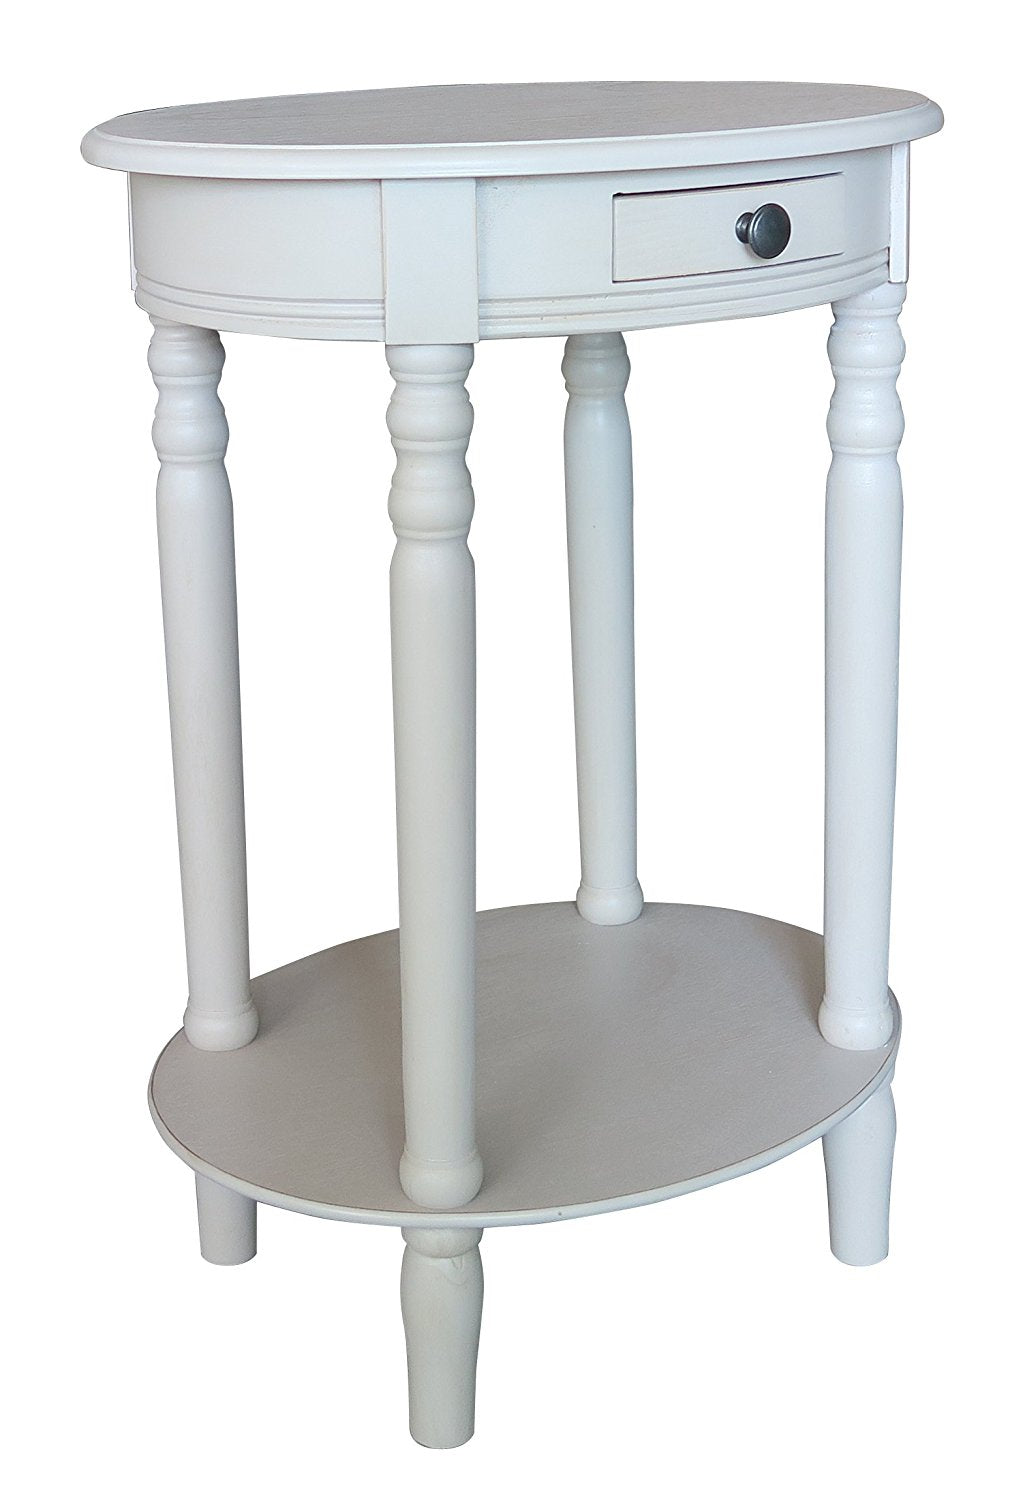 Woodbury Oval Accent Table with Drawer